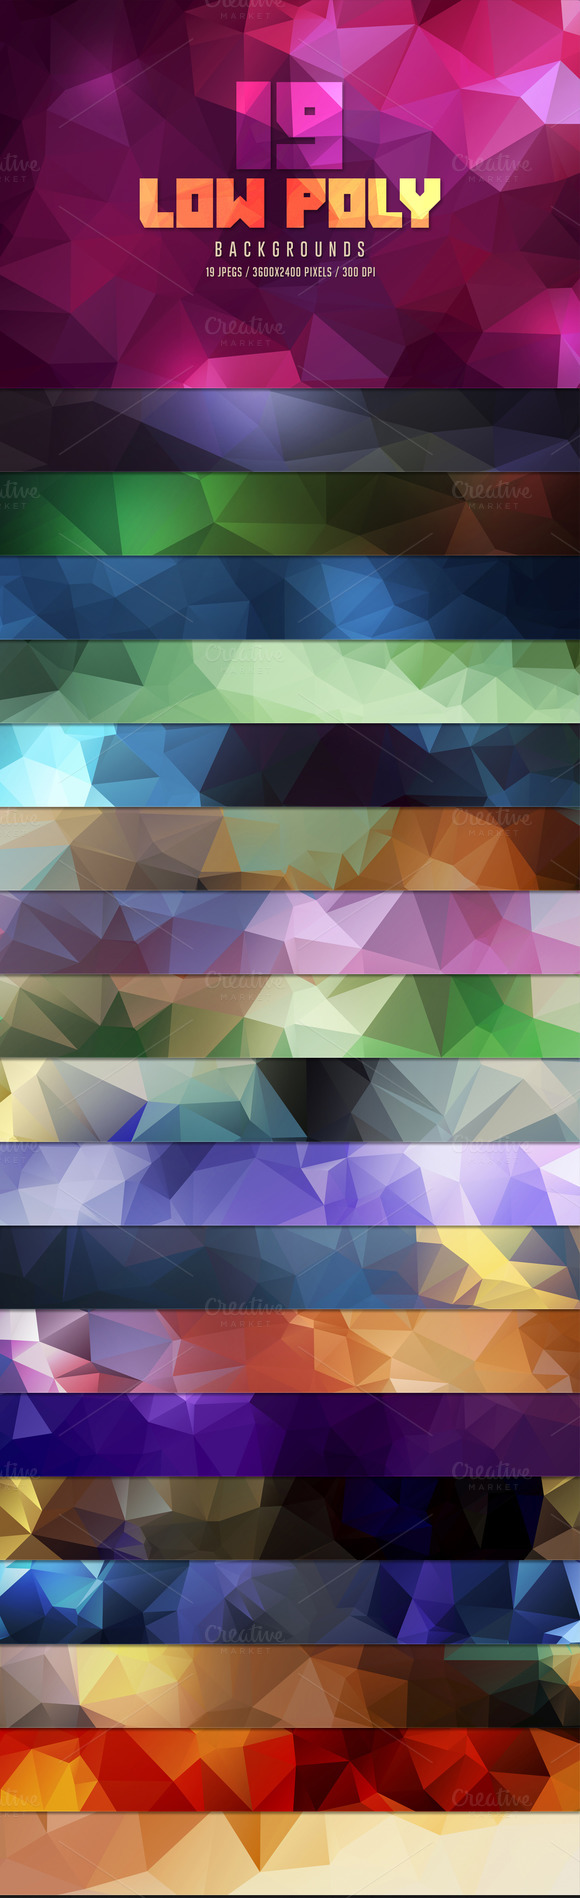 19 Low Poly Backgrounds